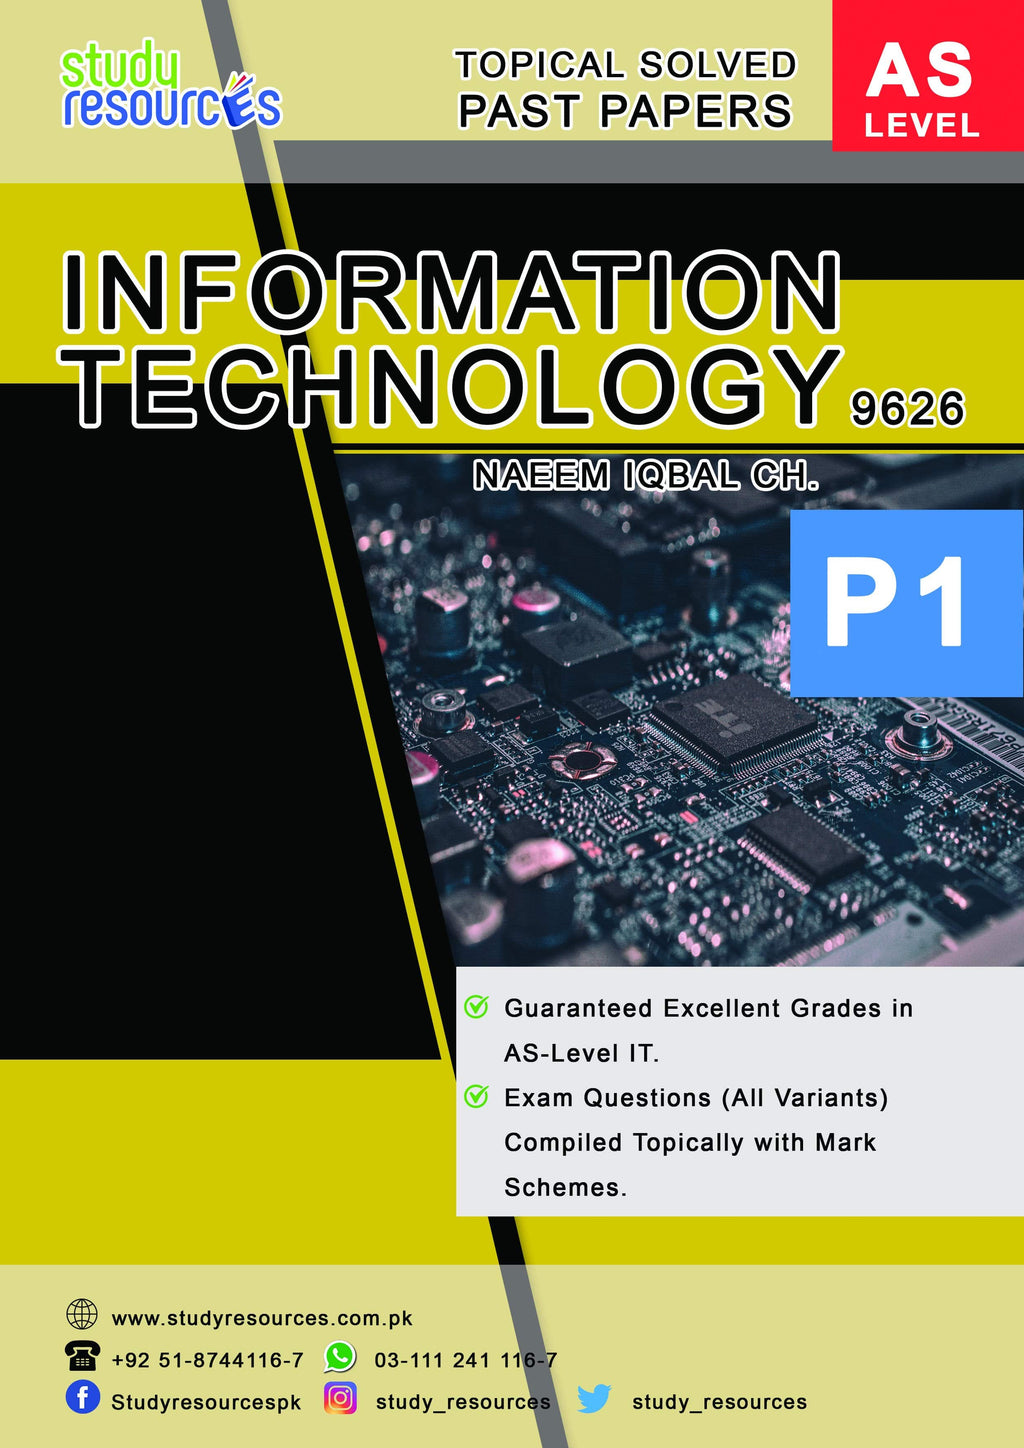 Cambridge AS-Level Information Technology (9626) Topical Paper-1 By Sir Naeem Iqbal Ch